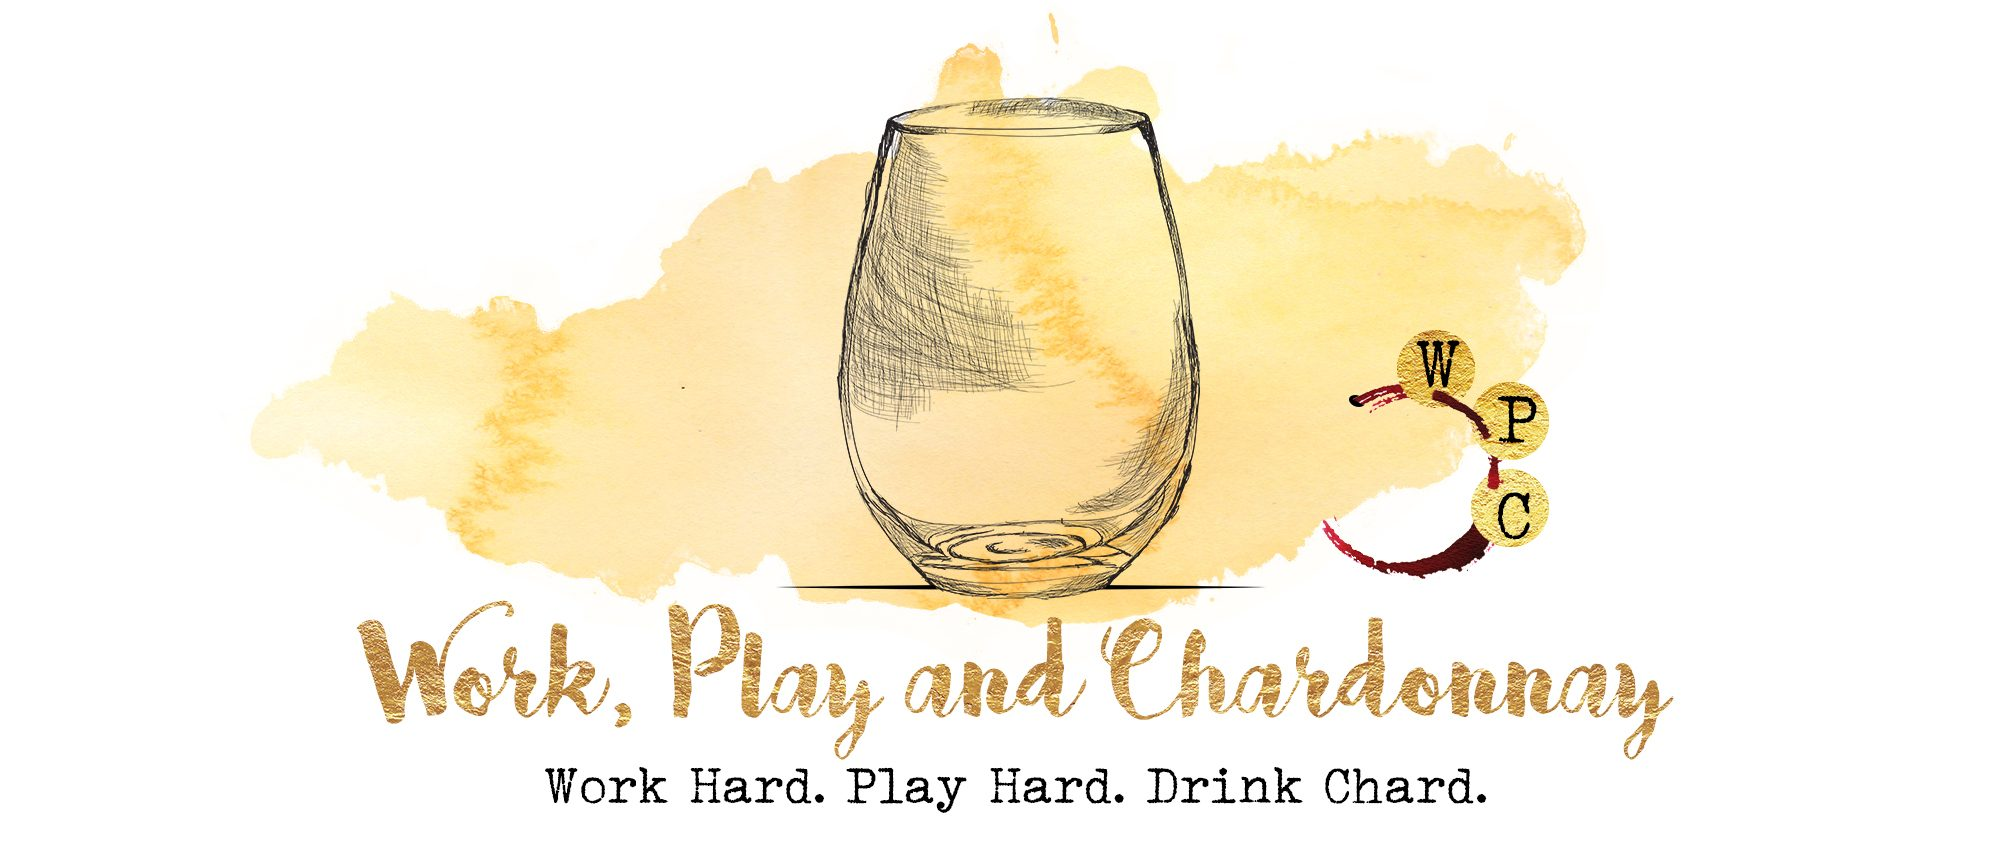 Work, Play and Chardonnay